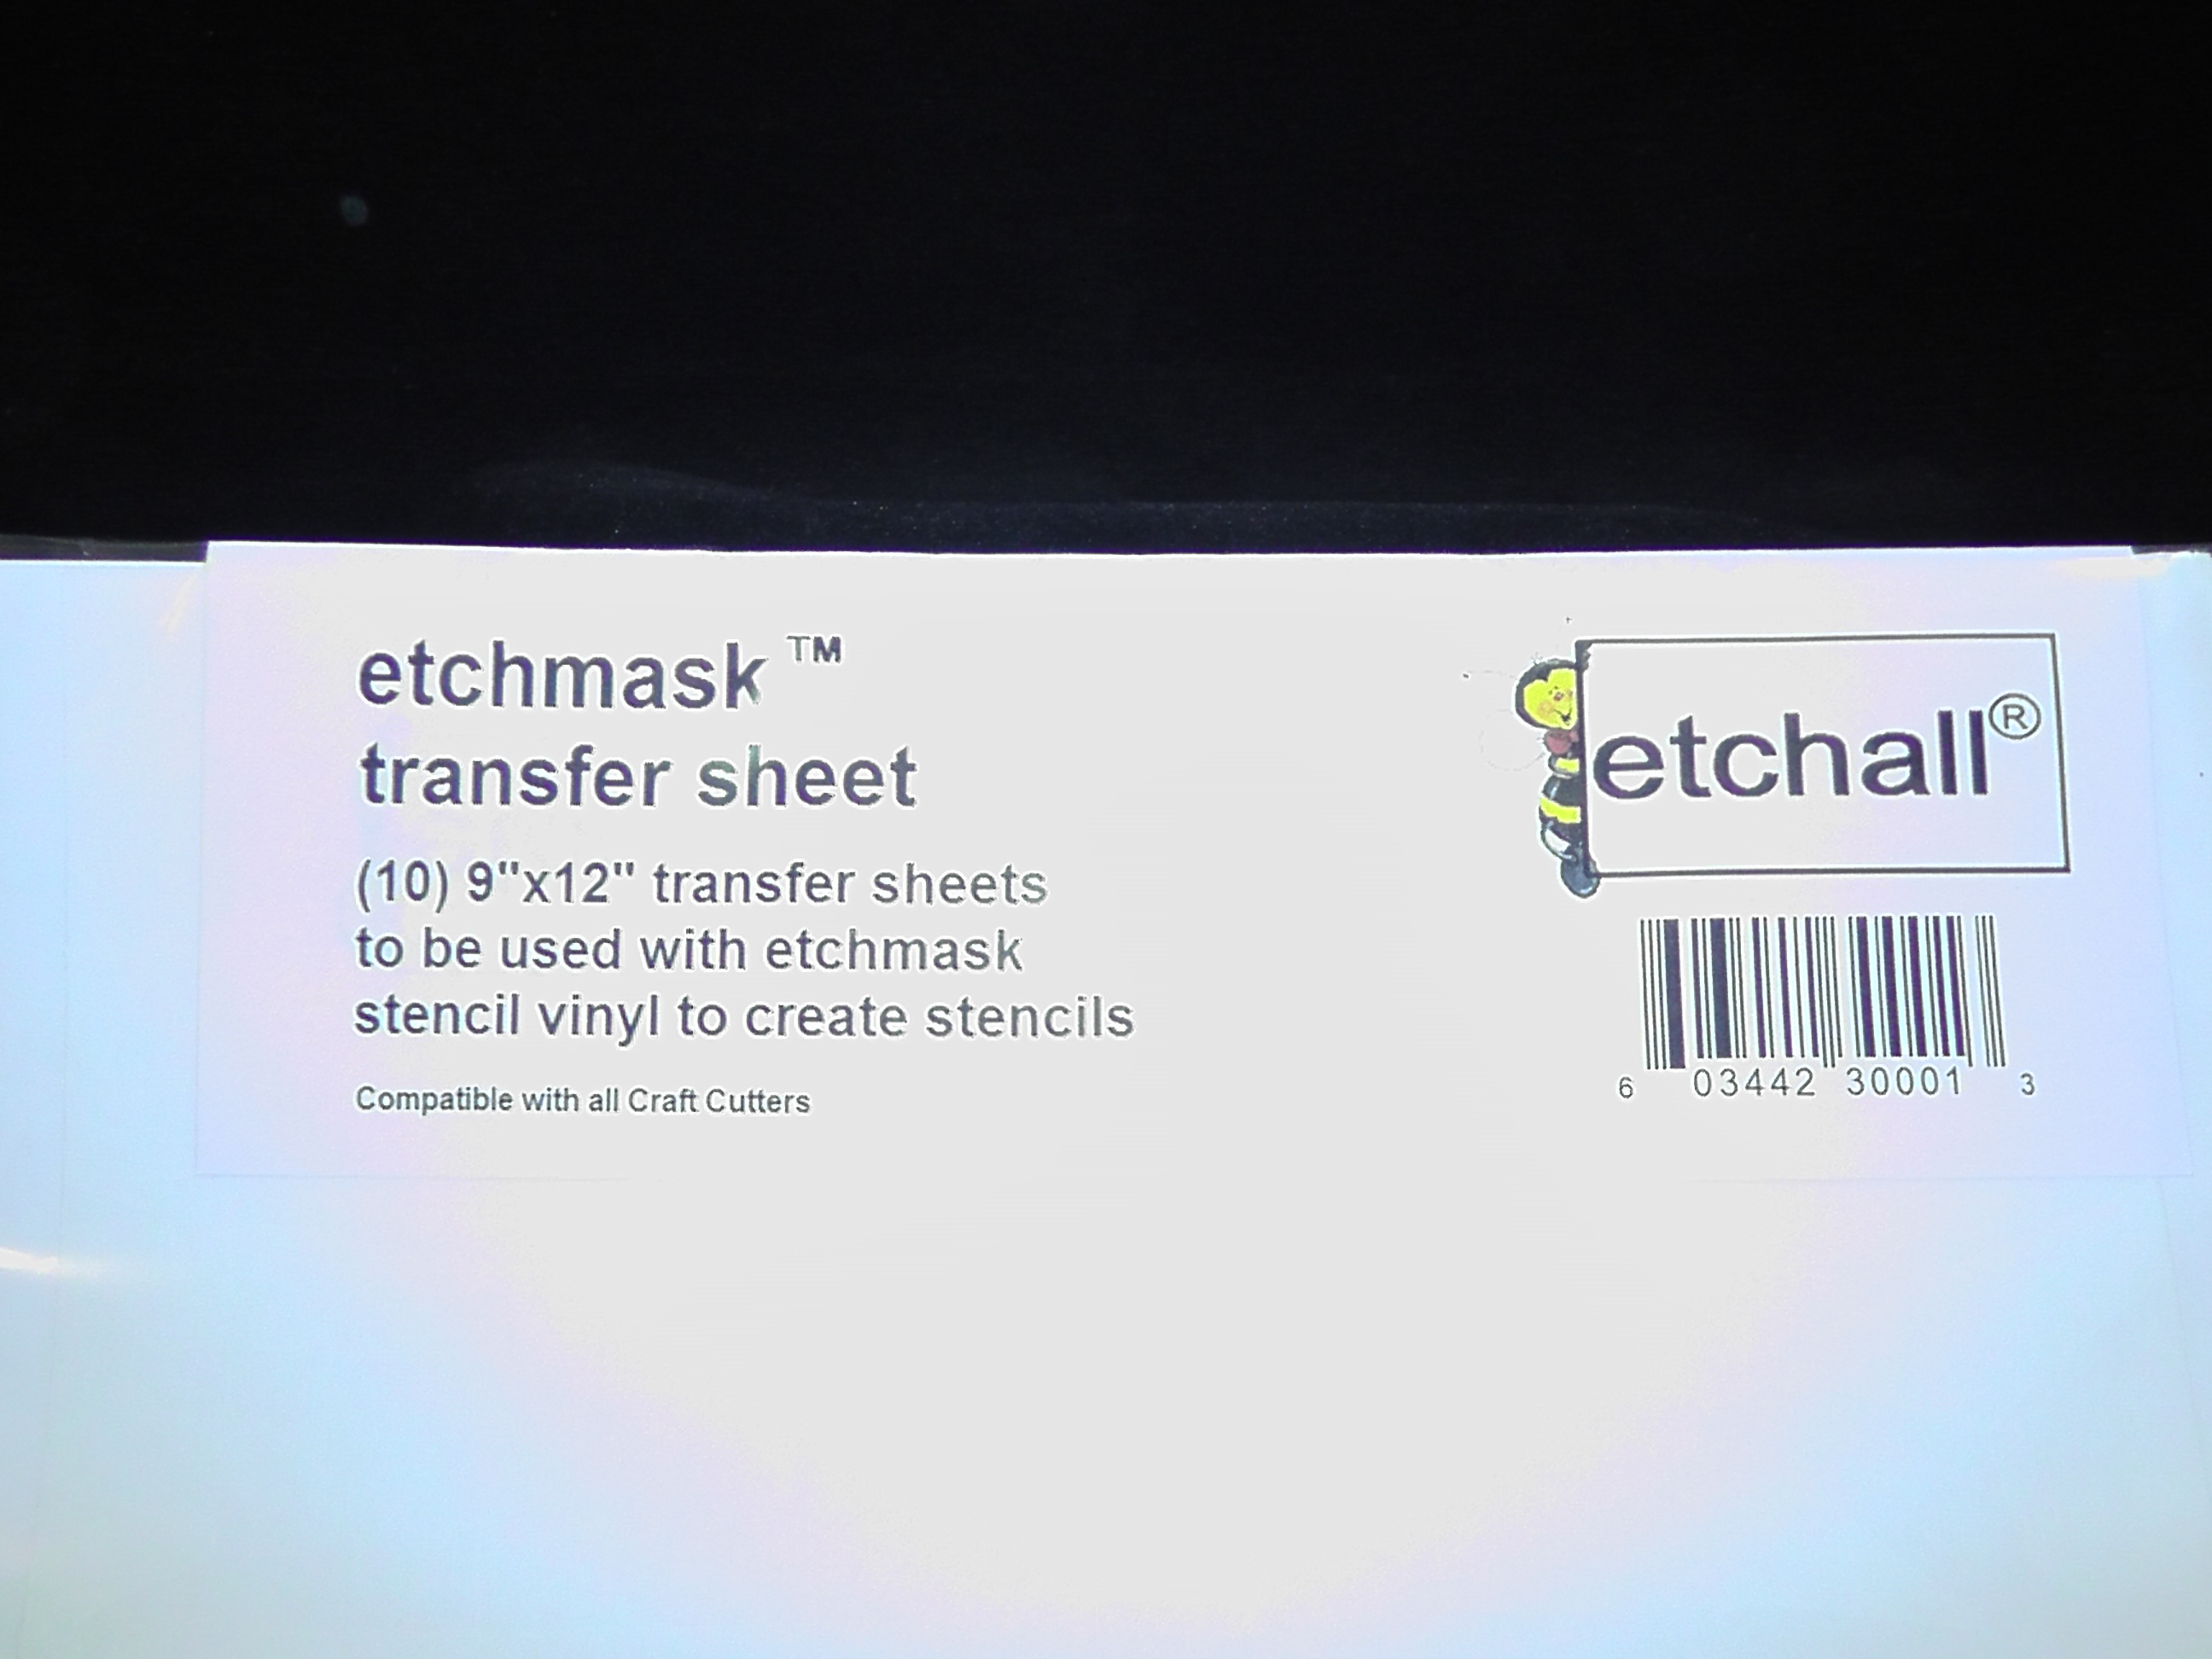 Etchmask Transfer Sheet